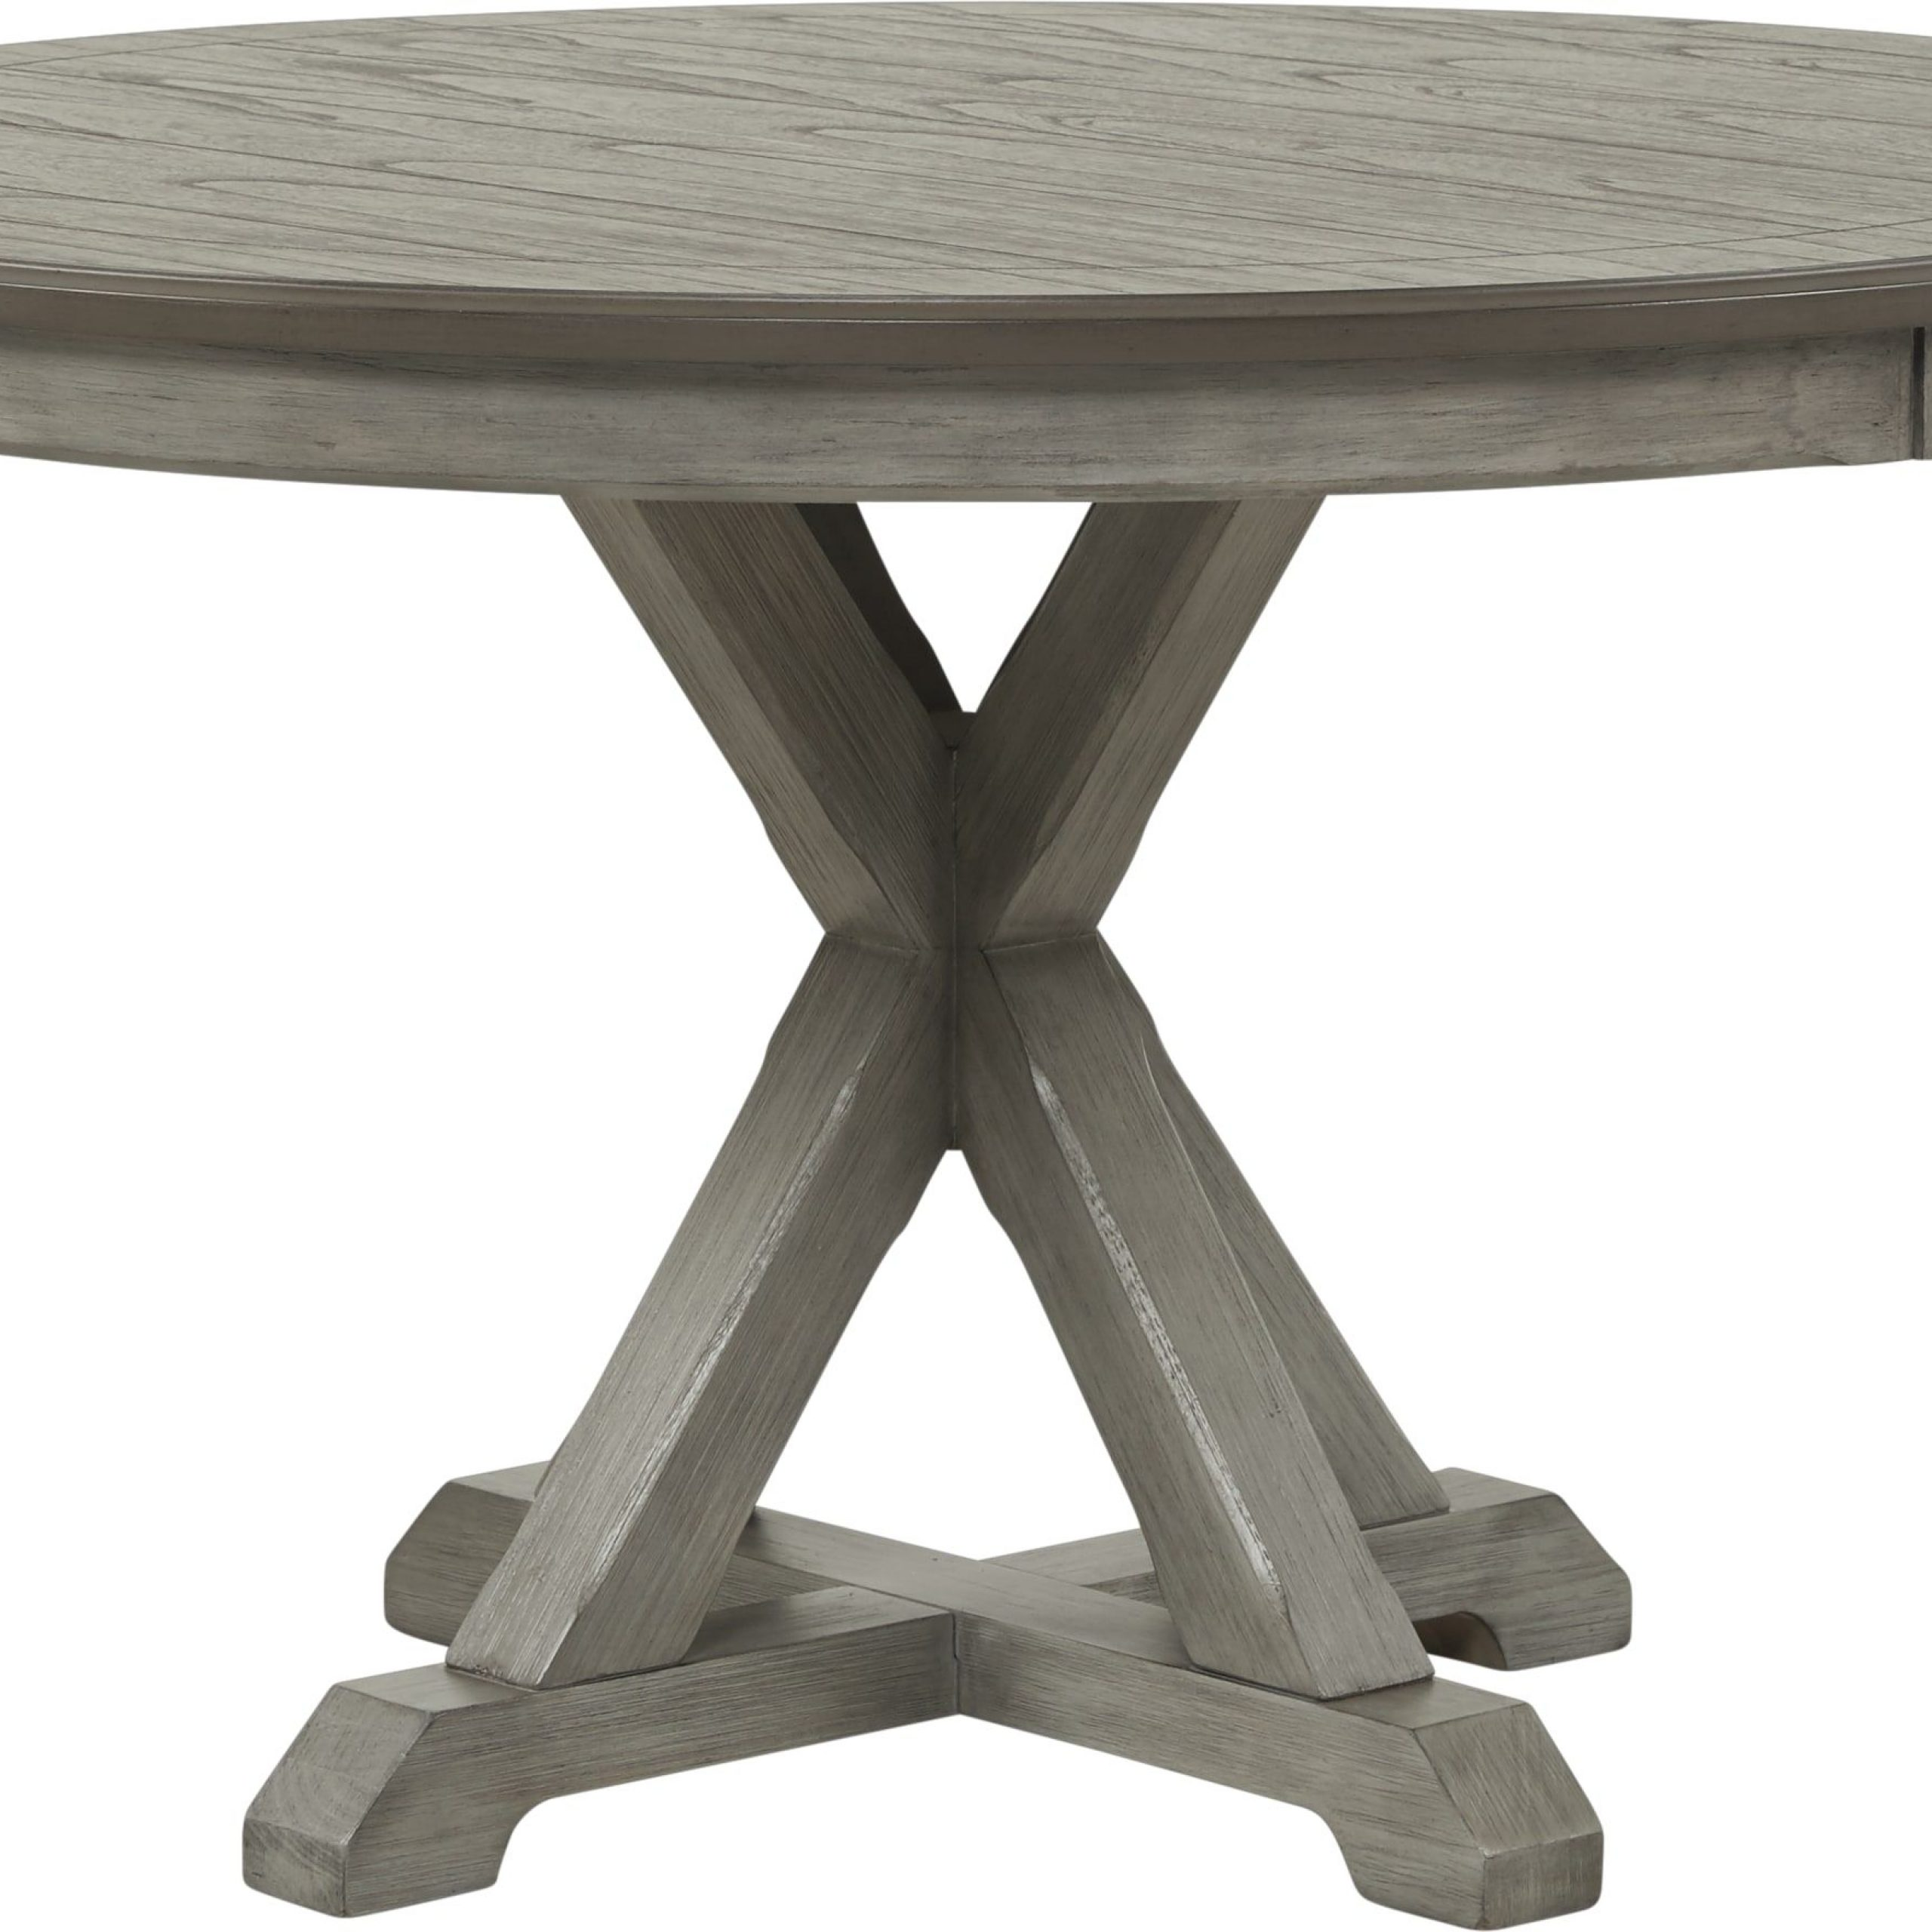 Nantucket Breeze Gray Round Dining Table .399. (Image 16 of 25)